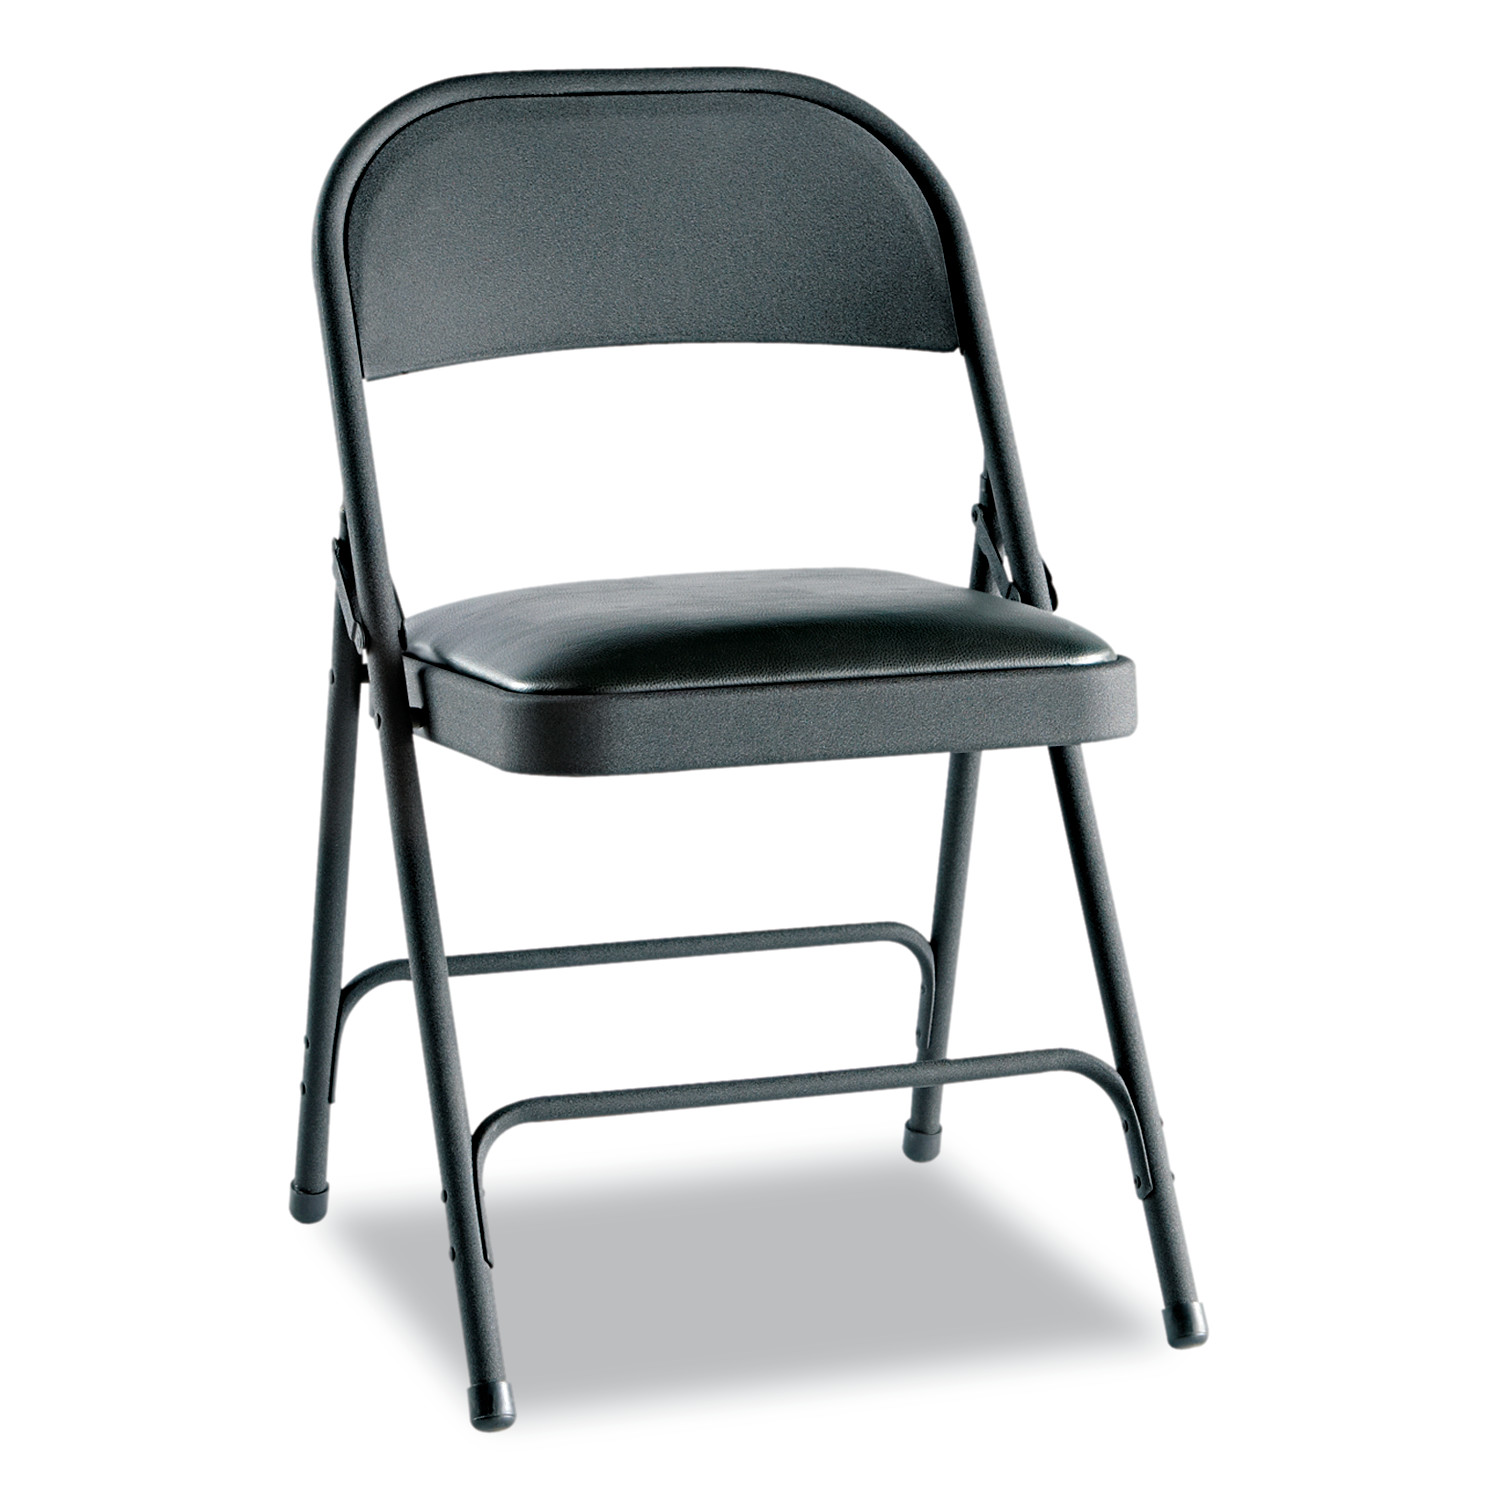 Alera Steel Folding Chair with Two-Brace Support, Padded Seat, Graphite, 4 Per Carton